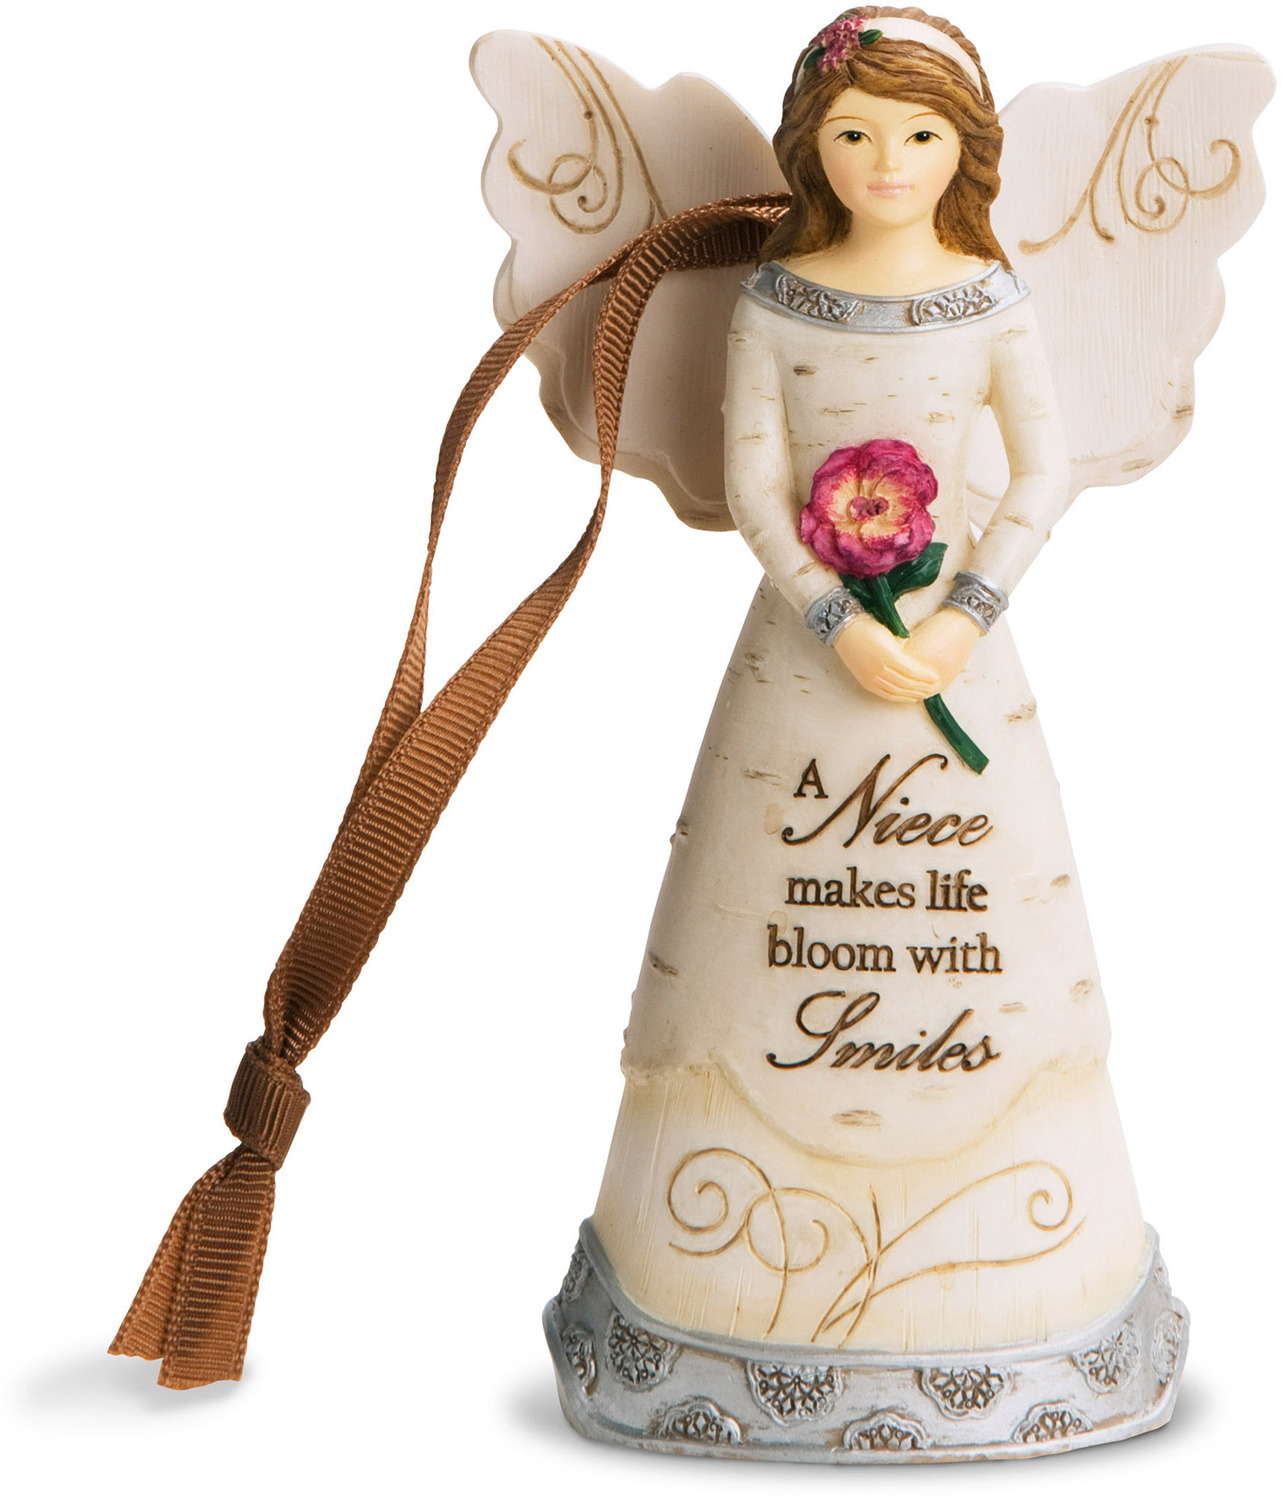 Niece by Elements - <em>Niece</em> - Angel Christmas Ornament, 4.75 in -